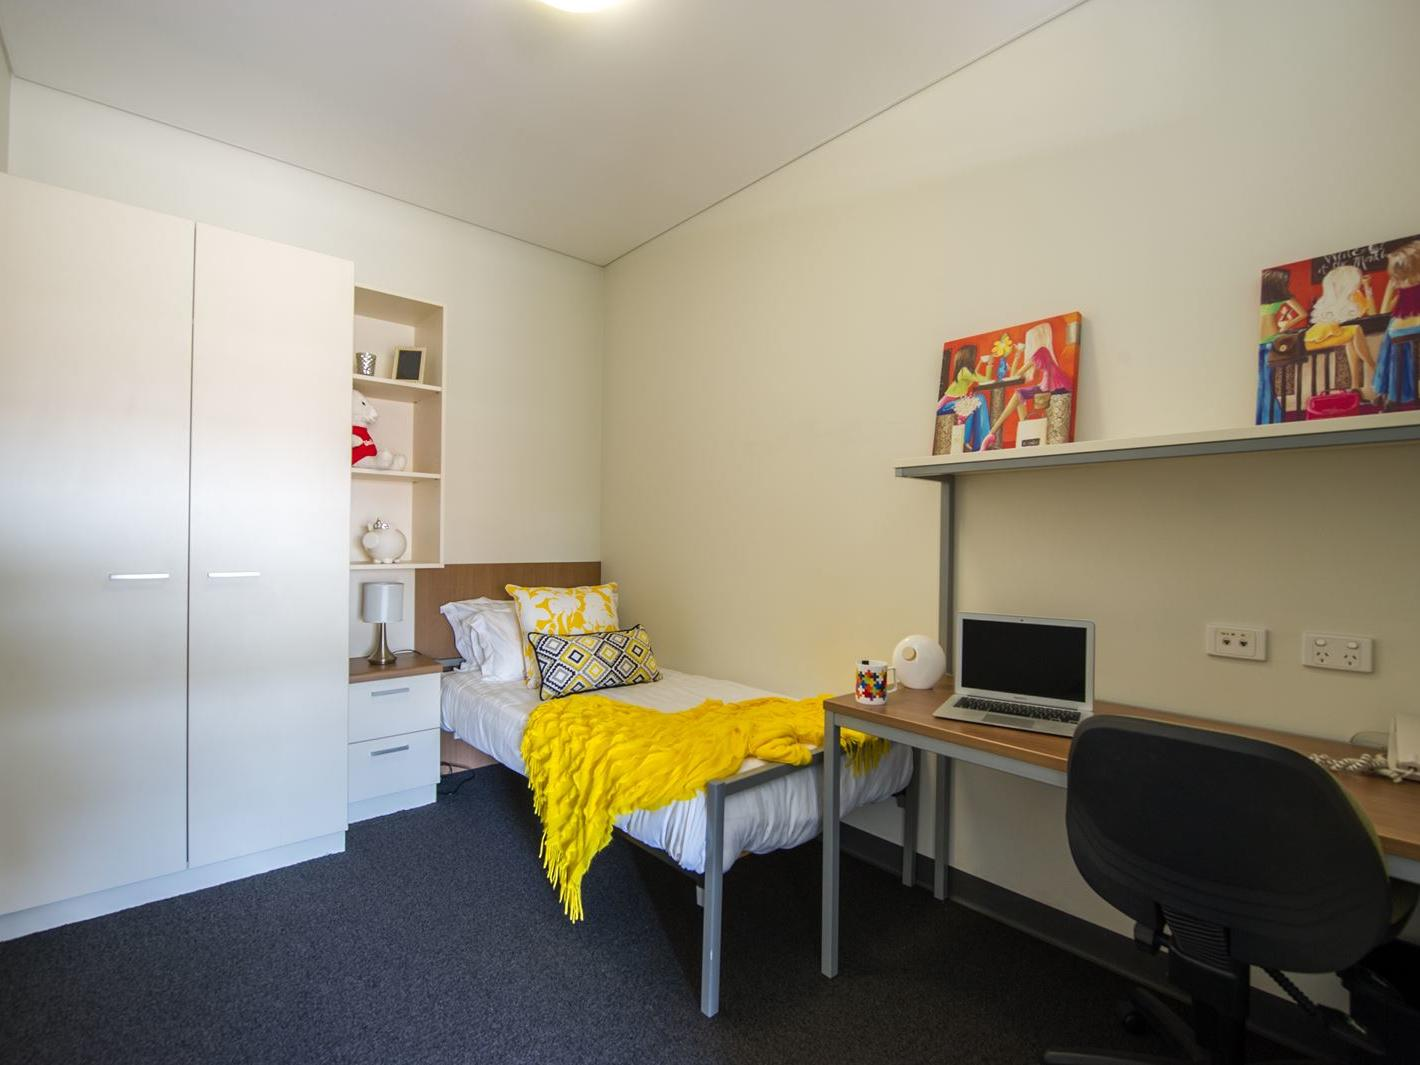 Bedroom with Study Desk and Wardrobe